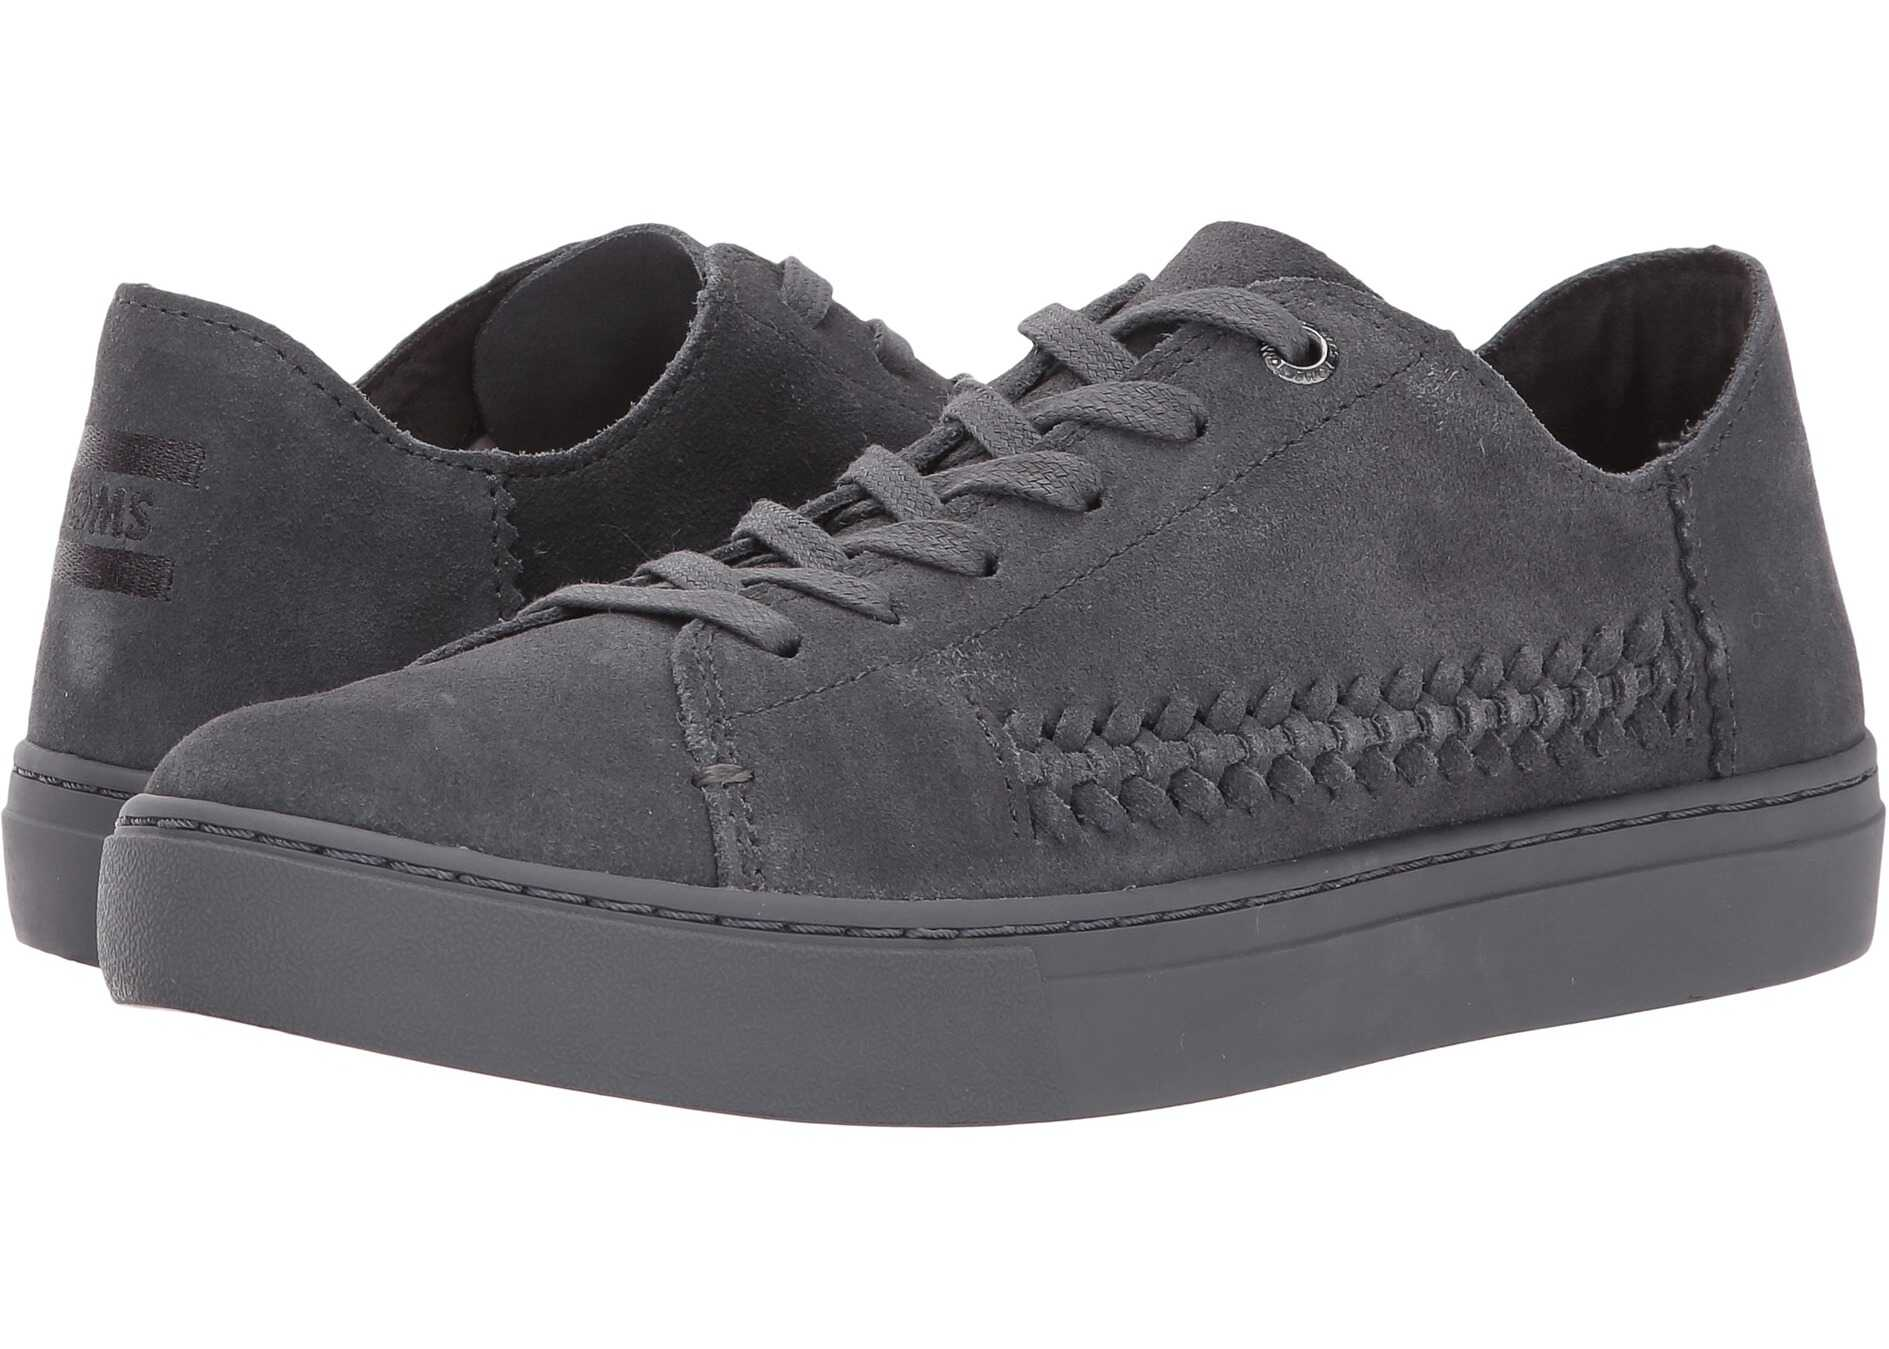 TOMS Lenox Sneaker Forged Iron Grey Monochrome Deconstructed Suede/Woven Panel